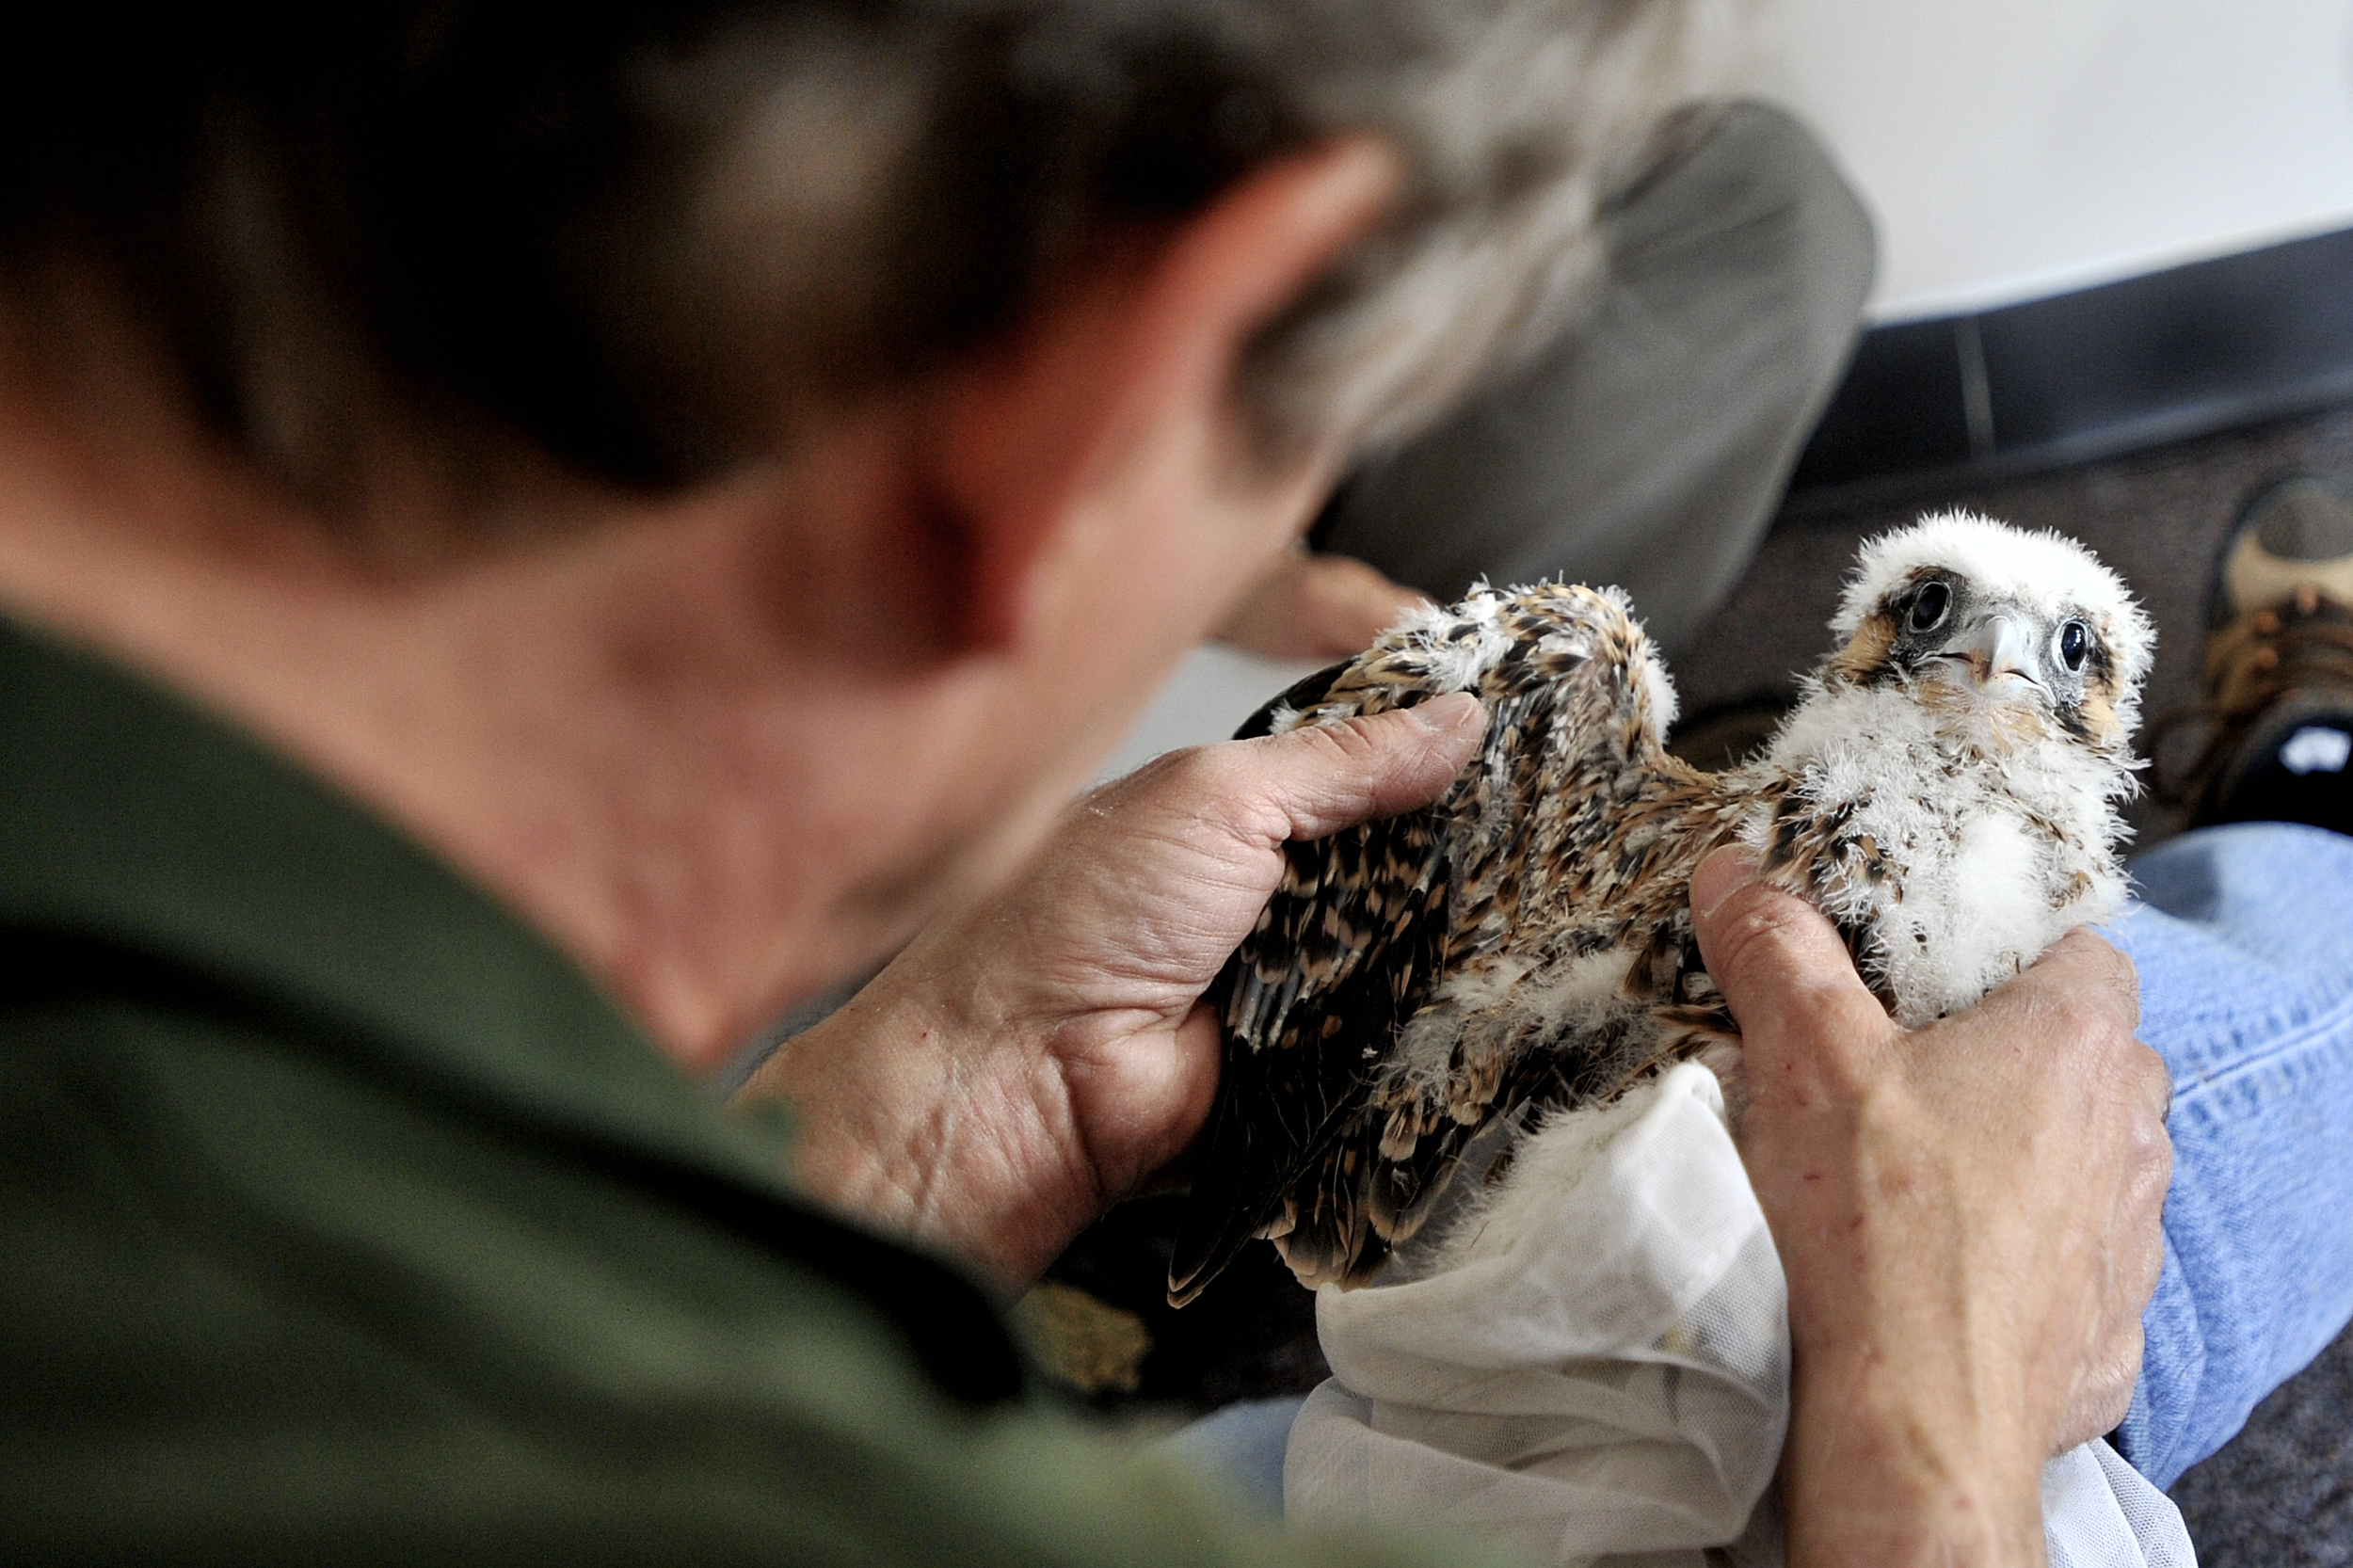 Art McMorris, a Peregrine falcon specialist from the Pennyslvania Game Commission, examines the wings of the nestling falcon during the banding of the Peregrine falcons at the Callowhill building in Reading, PA, on May 25, 2016. (Reading Eagle: Sarah Stier)